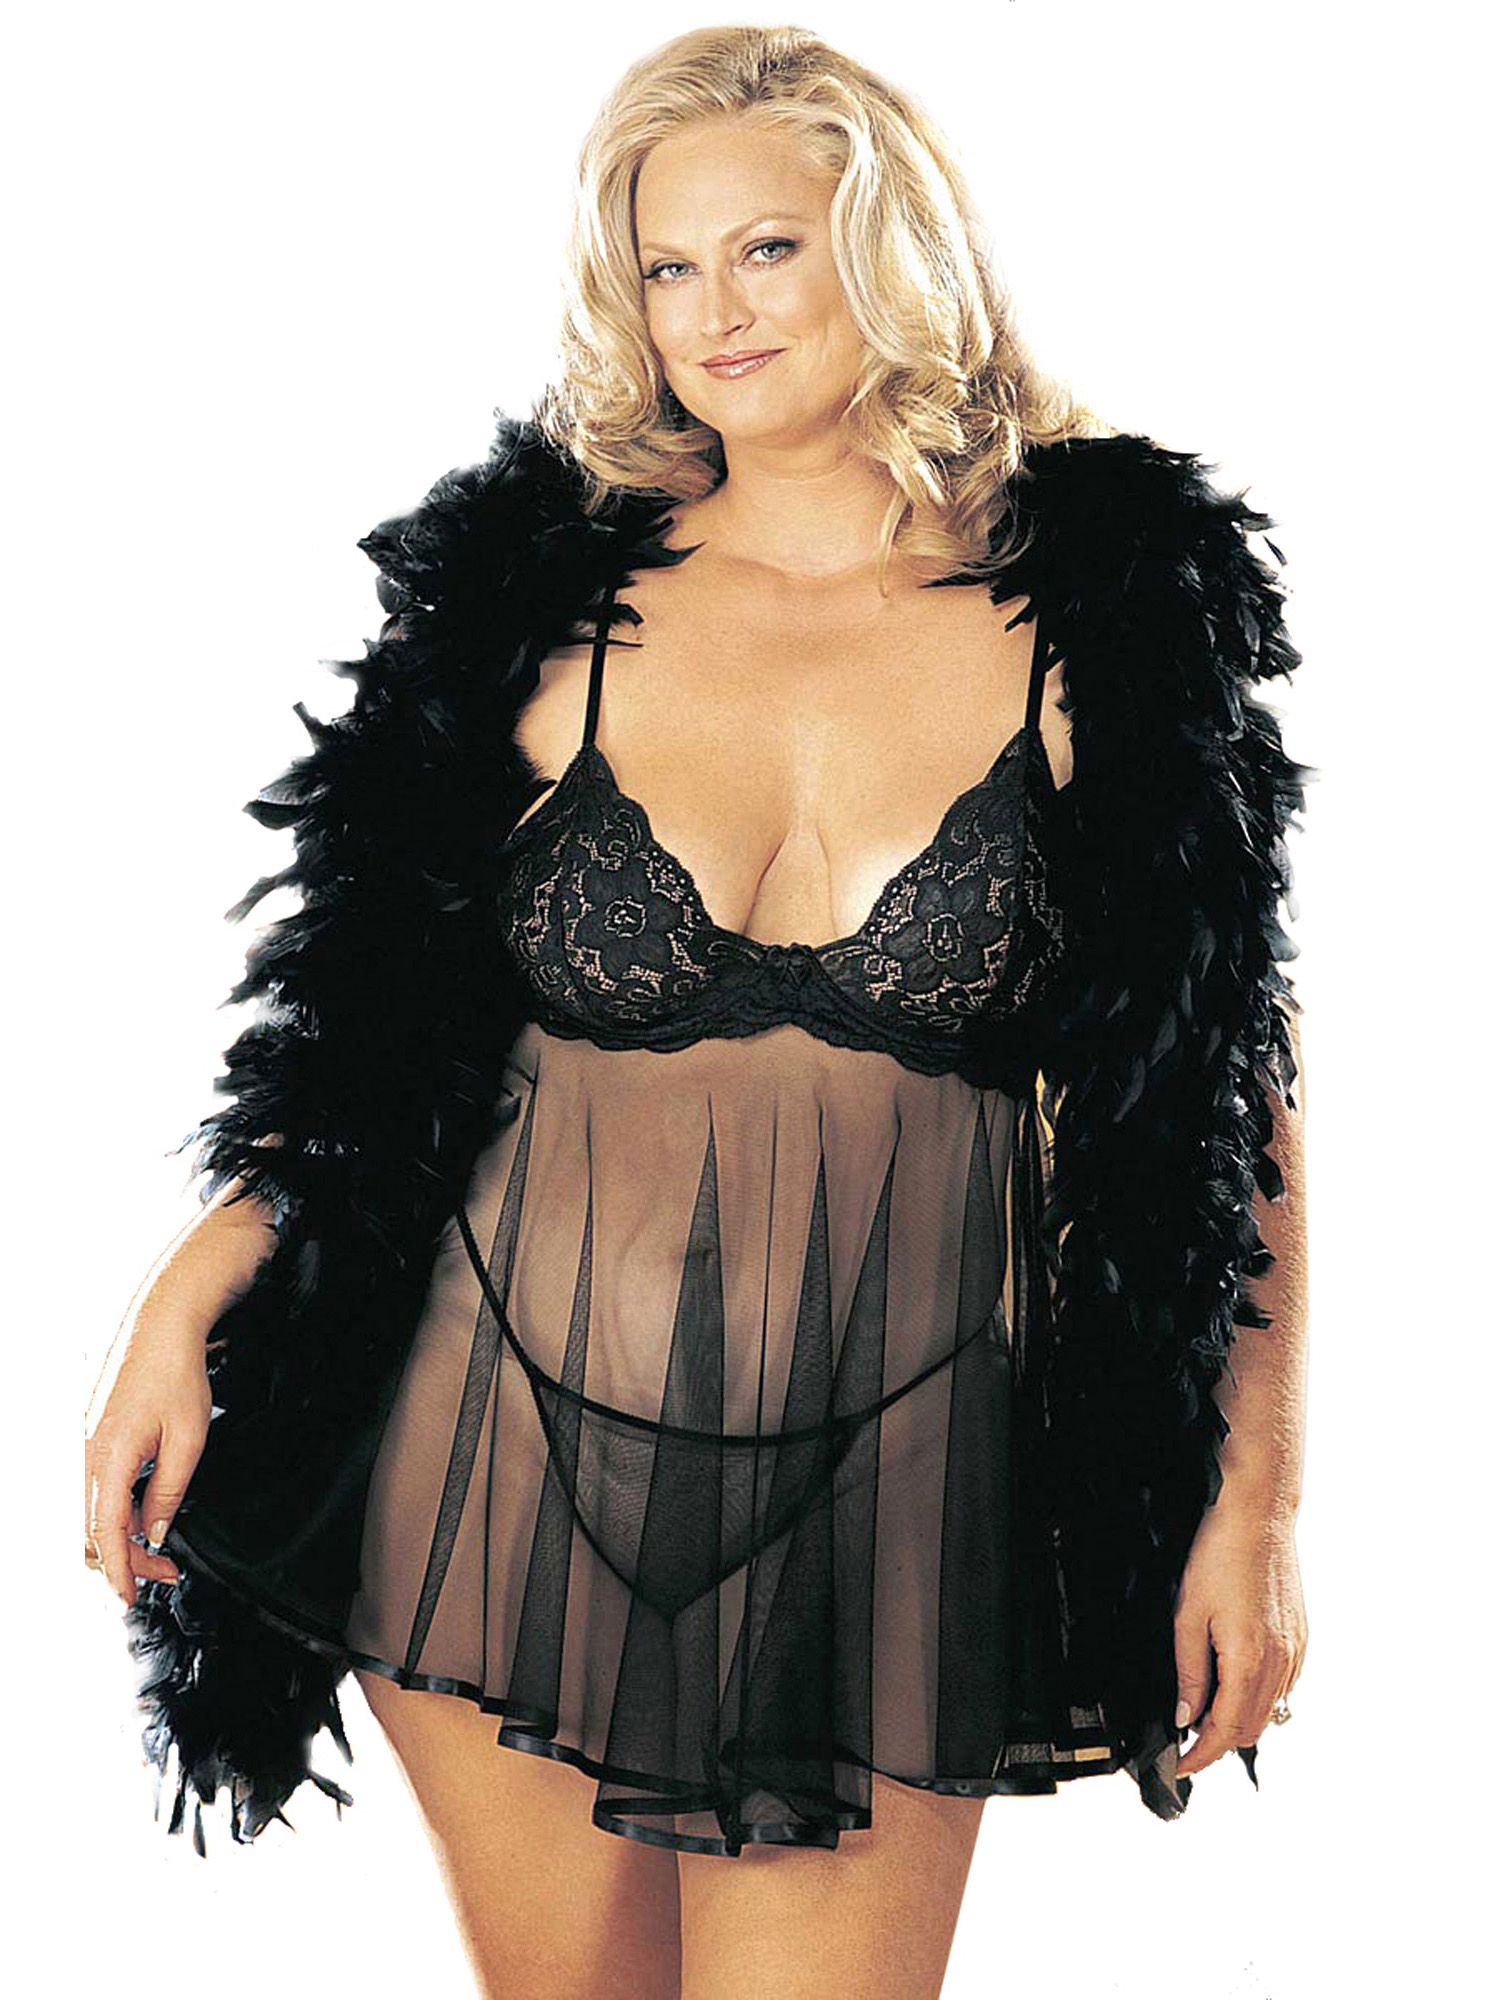 Plus Size Curvy Sexy Lace and Sheer Net Babydoll Lingerie | eBay